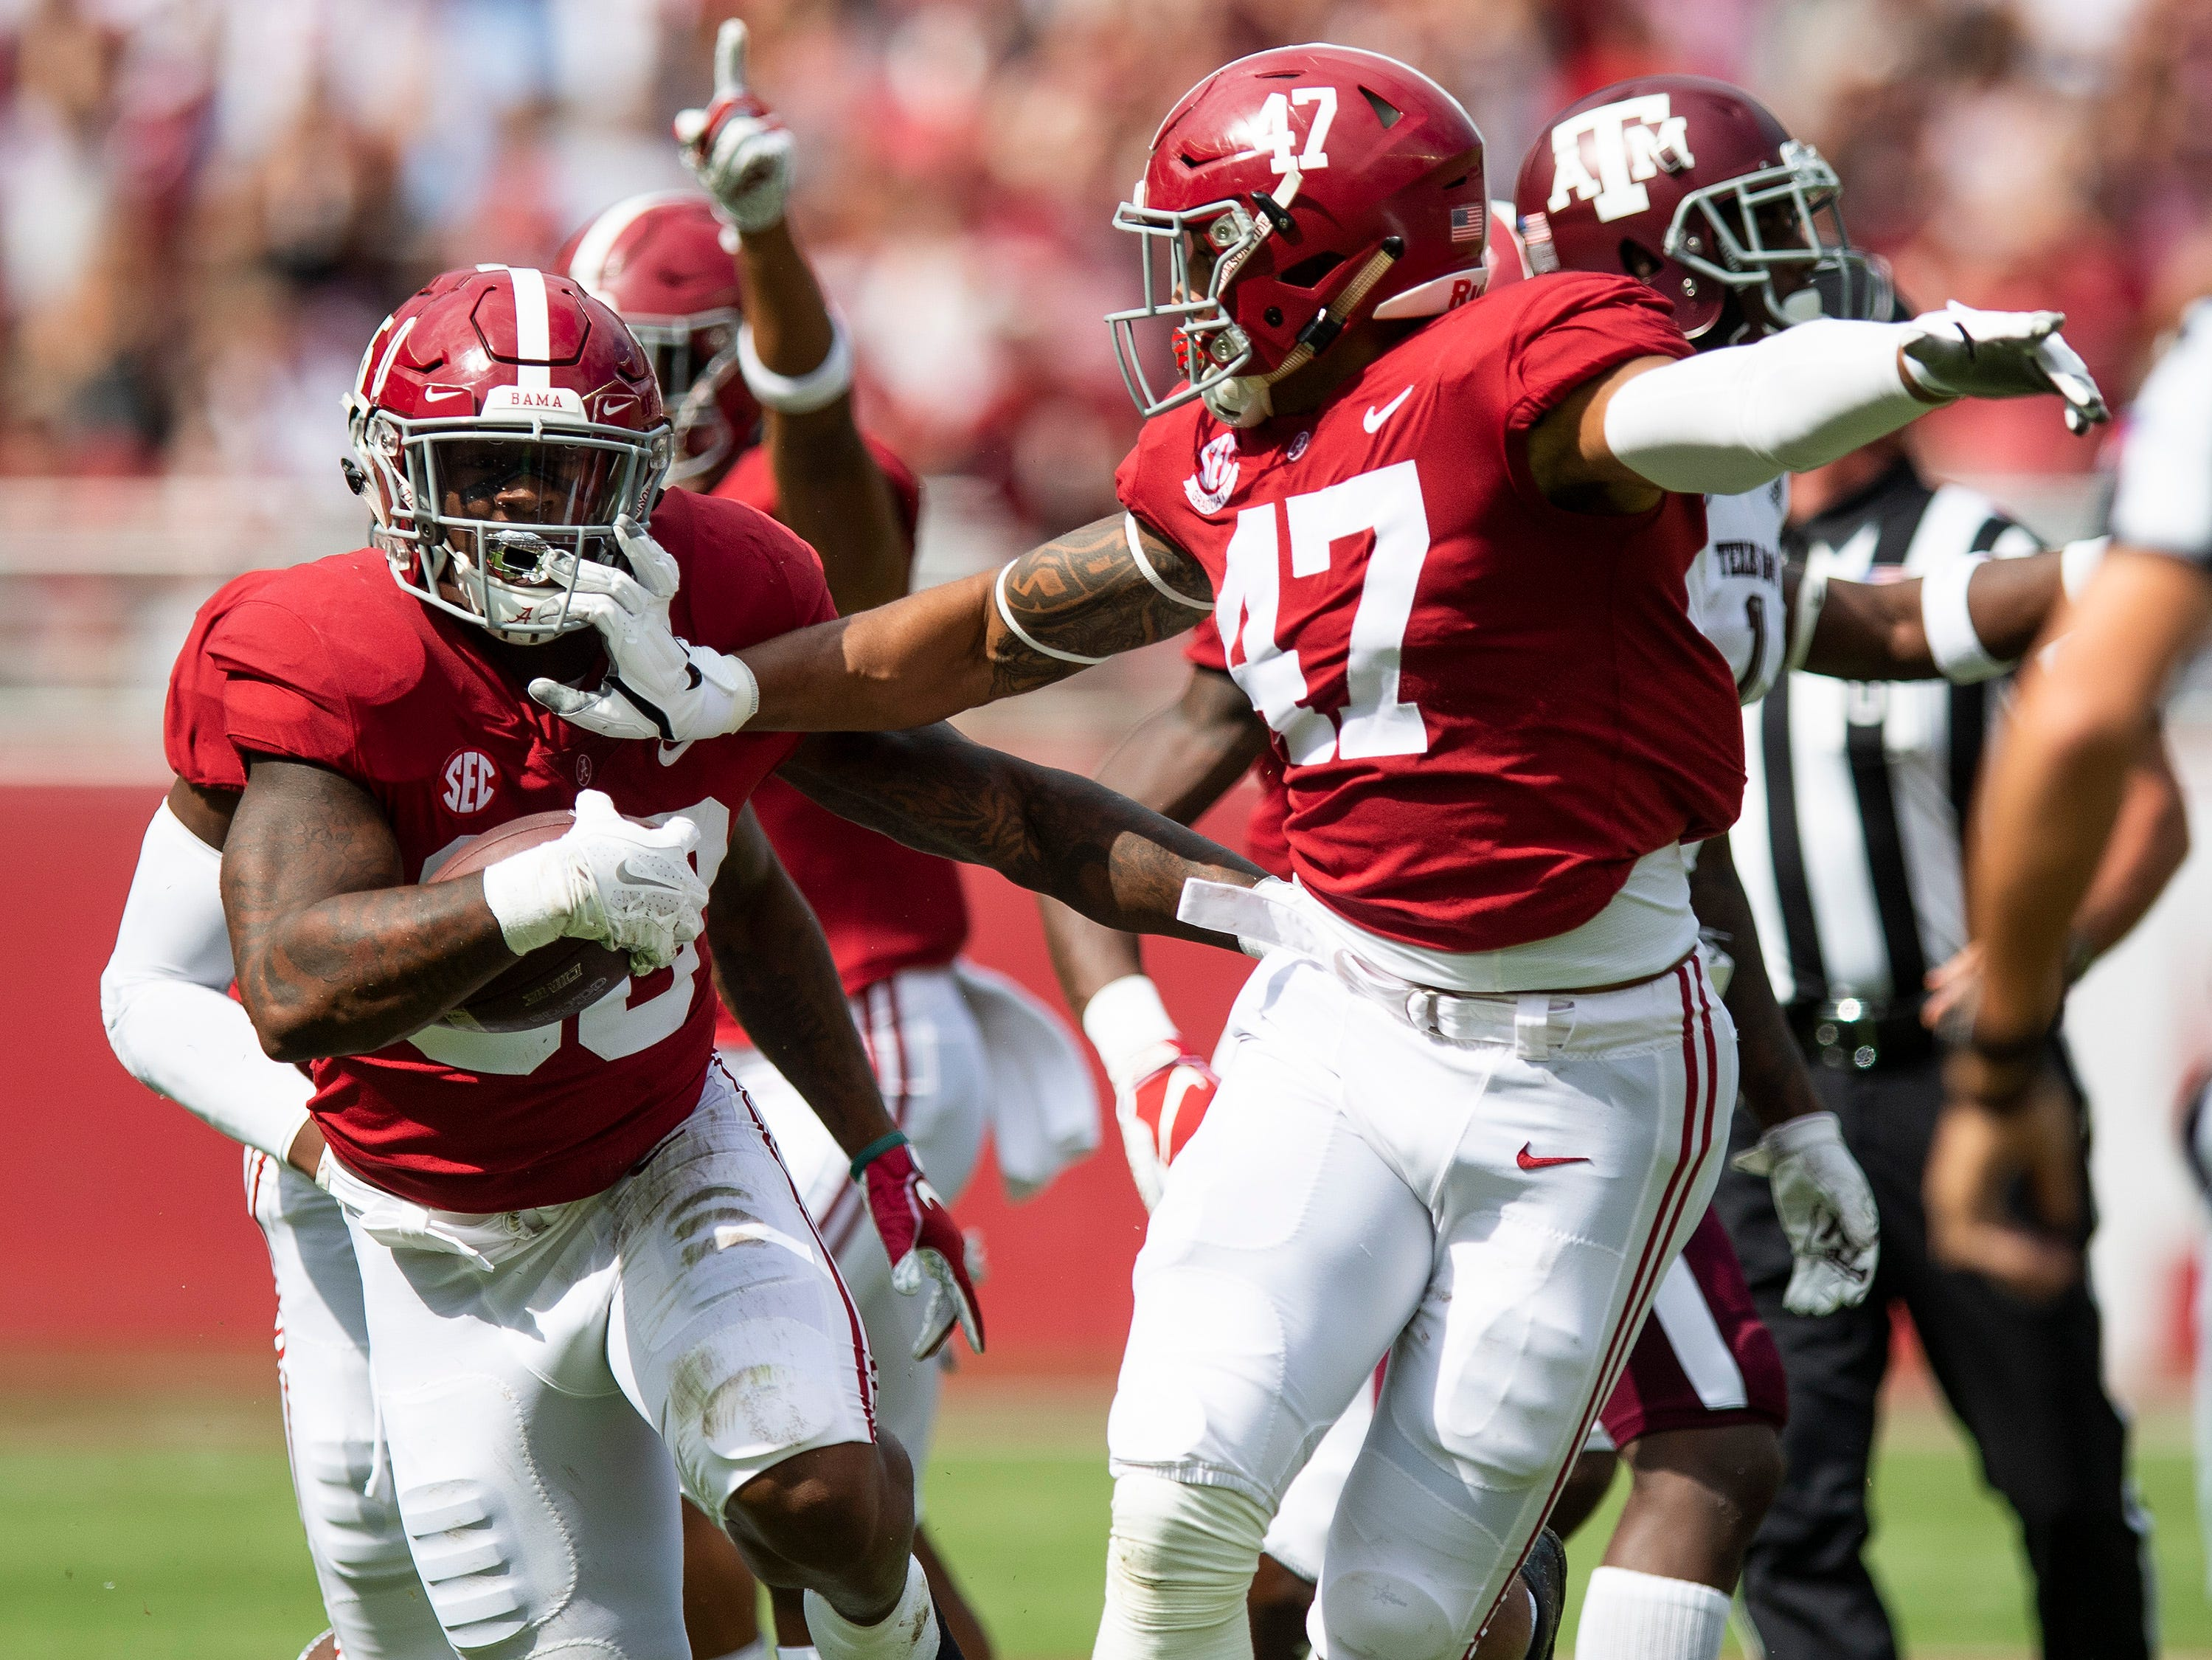 Alabama linebacker Mack Wilson (30) and linebacker Christian Miller (47) celebrate Wilson's interception against Texas A&M In first half action in Tuscaloosa, Ala., on Saturday September 22, 2018.